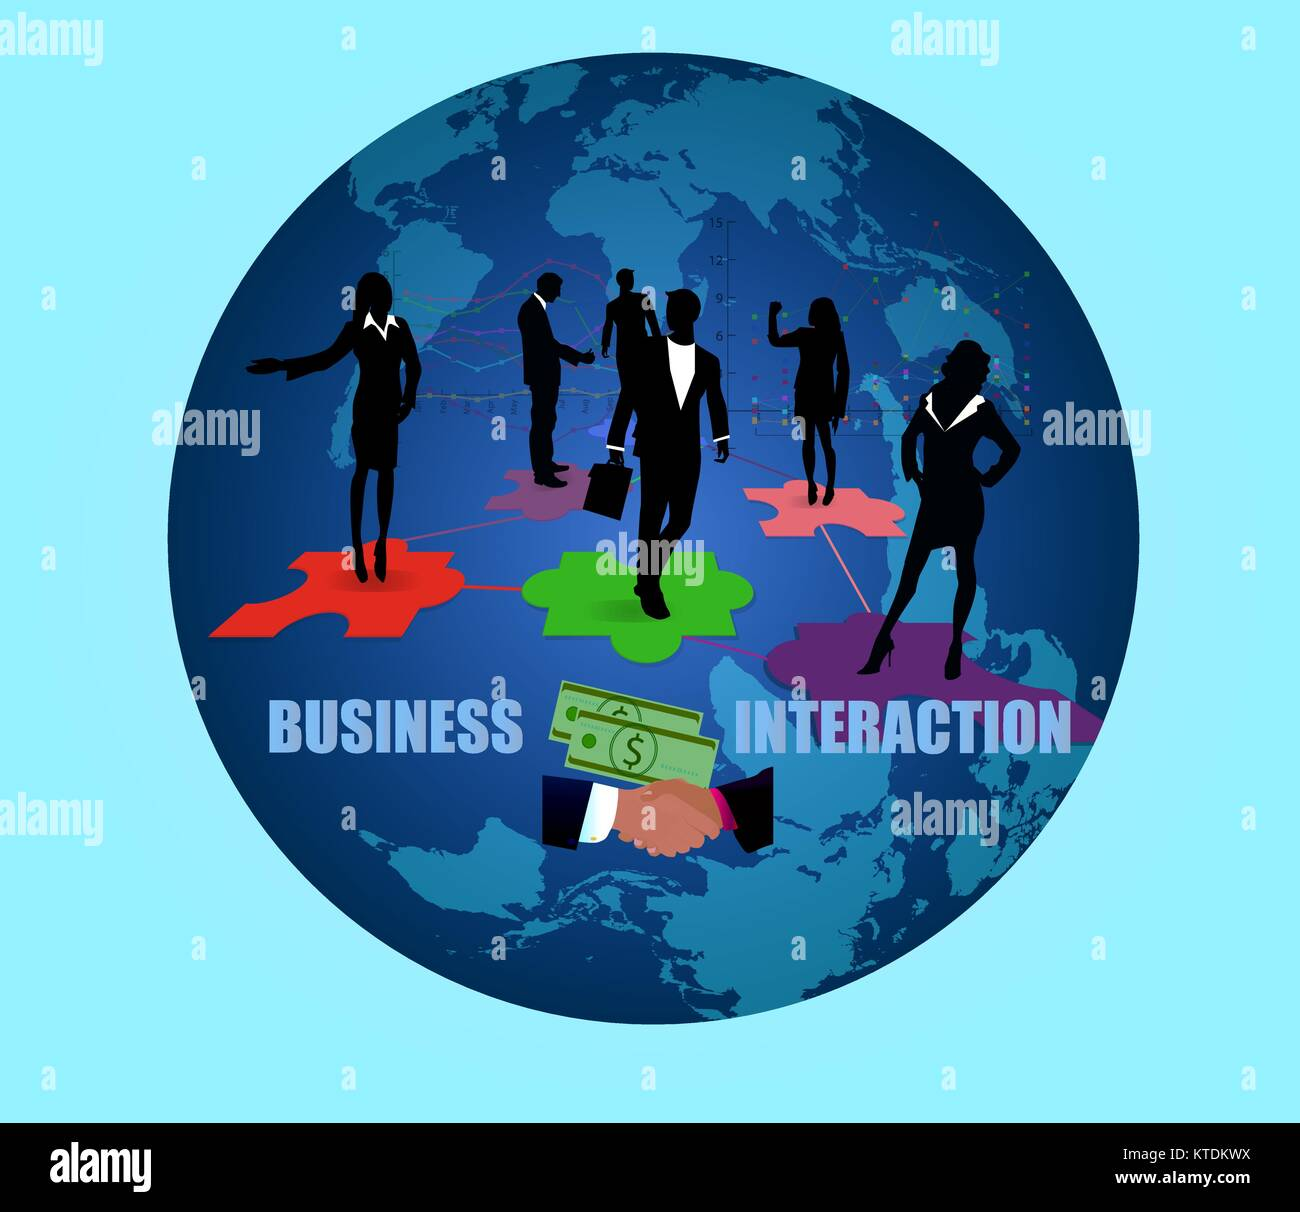 BUSINESS INTERACTION - Stock Image